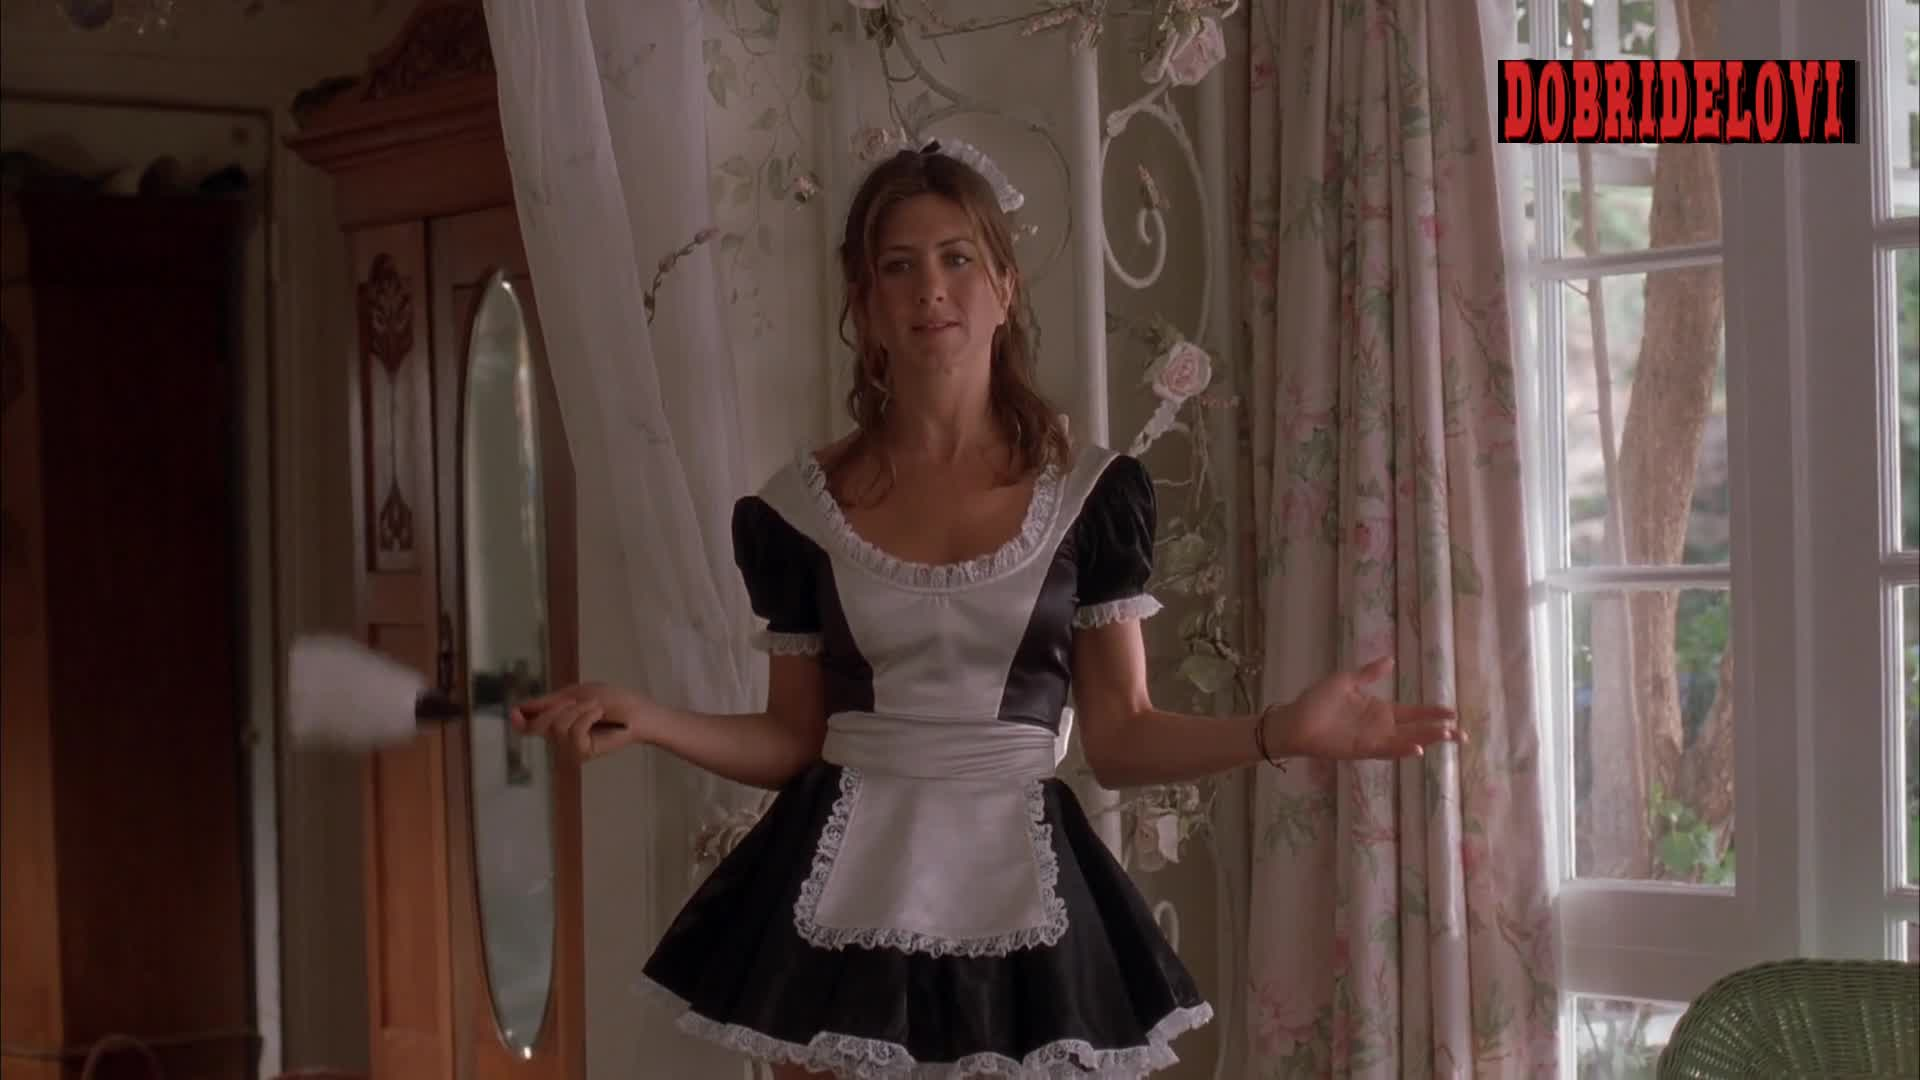 Jennifer Aniston french maid role playing scene